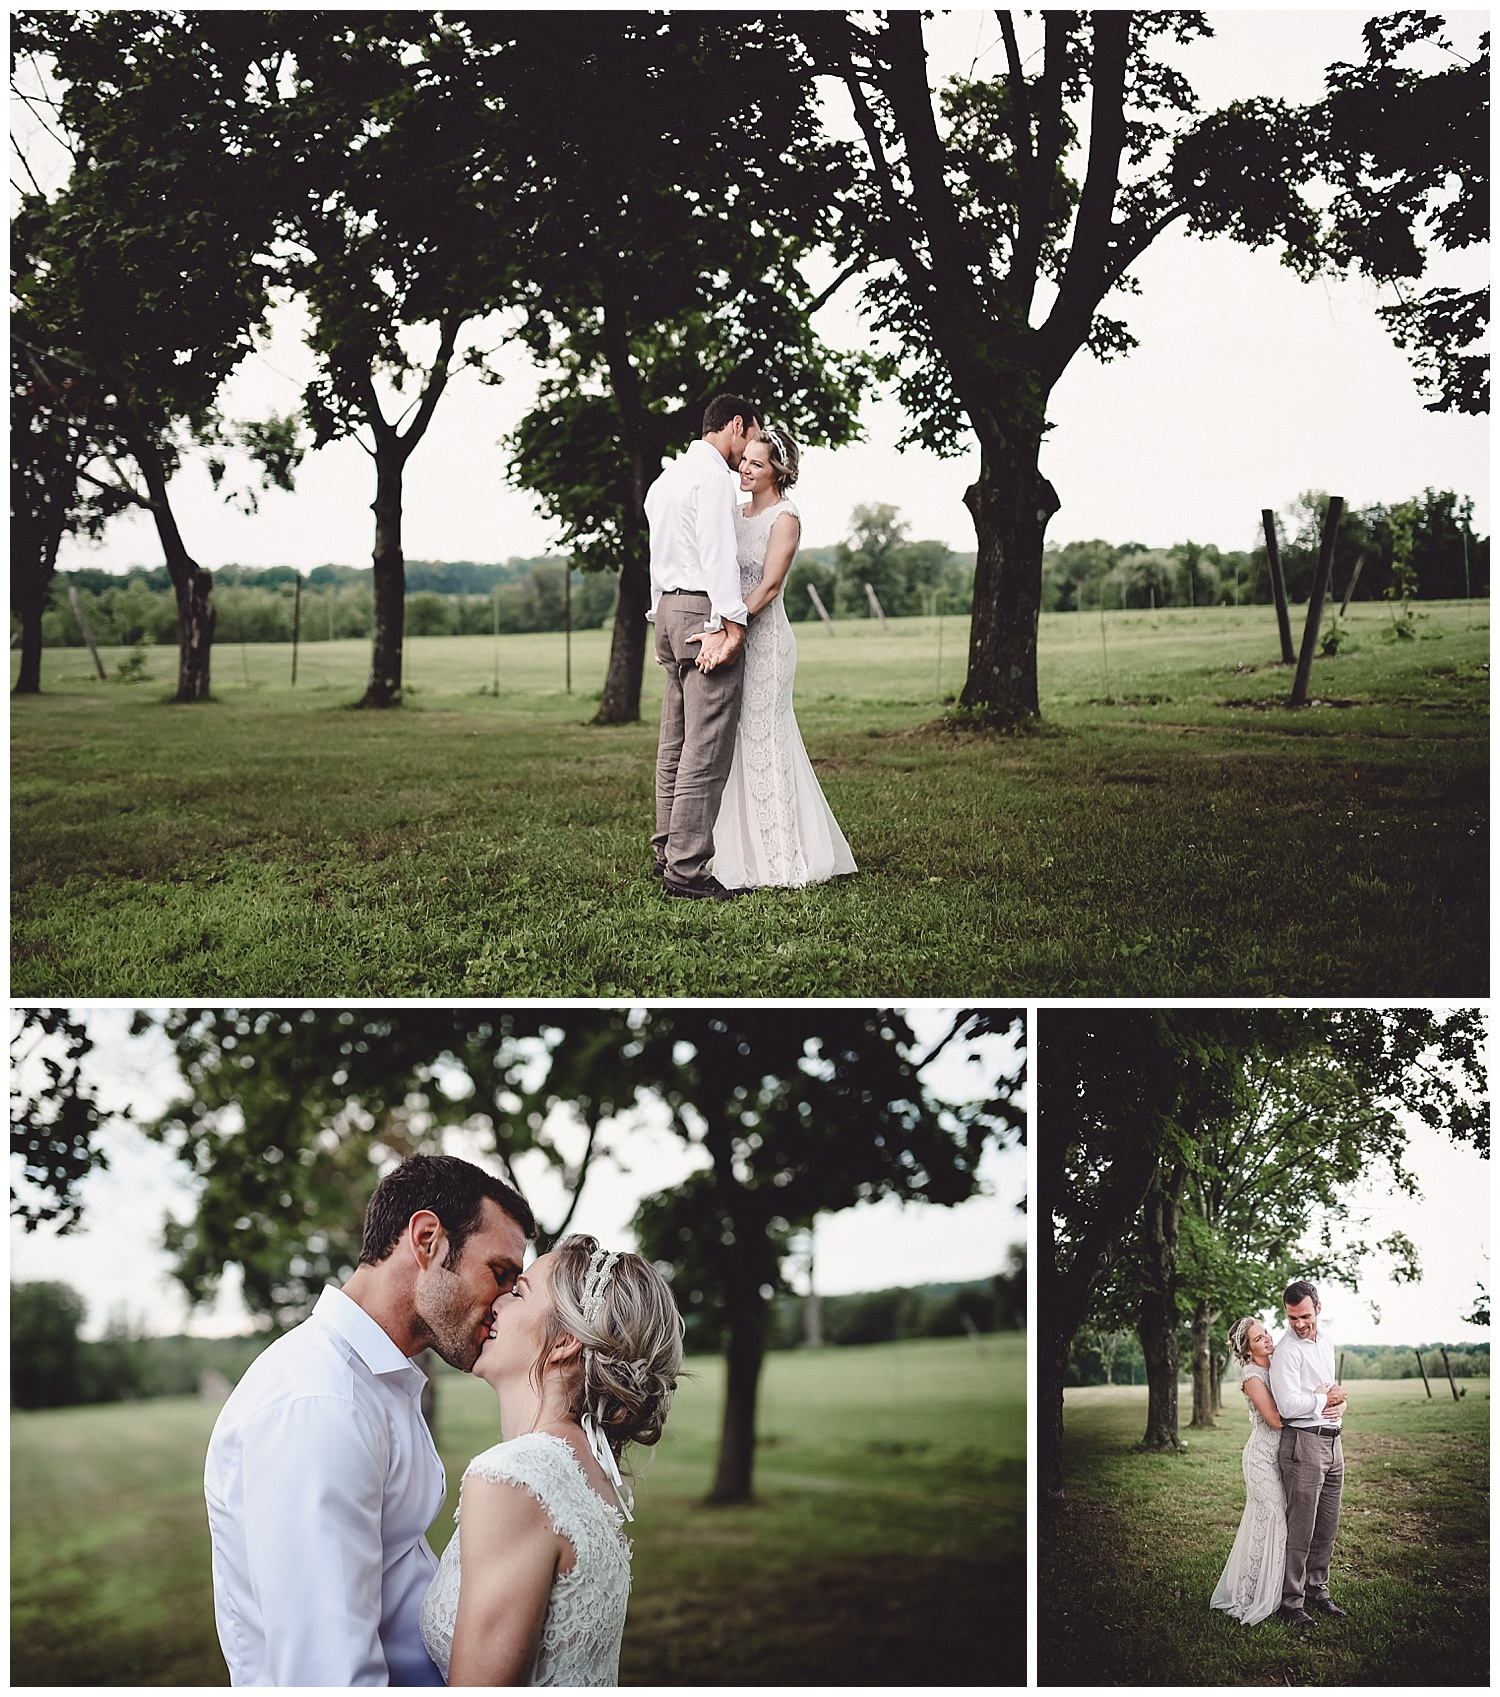 Wedding Photographer in Lewisburg Central PA at Tolino Vineyards in Bangor PA